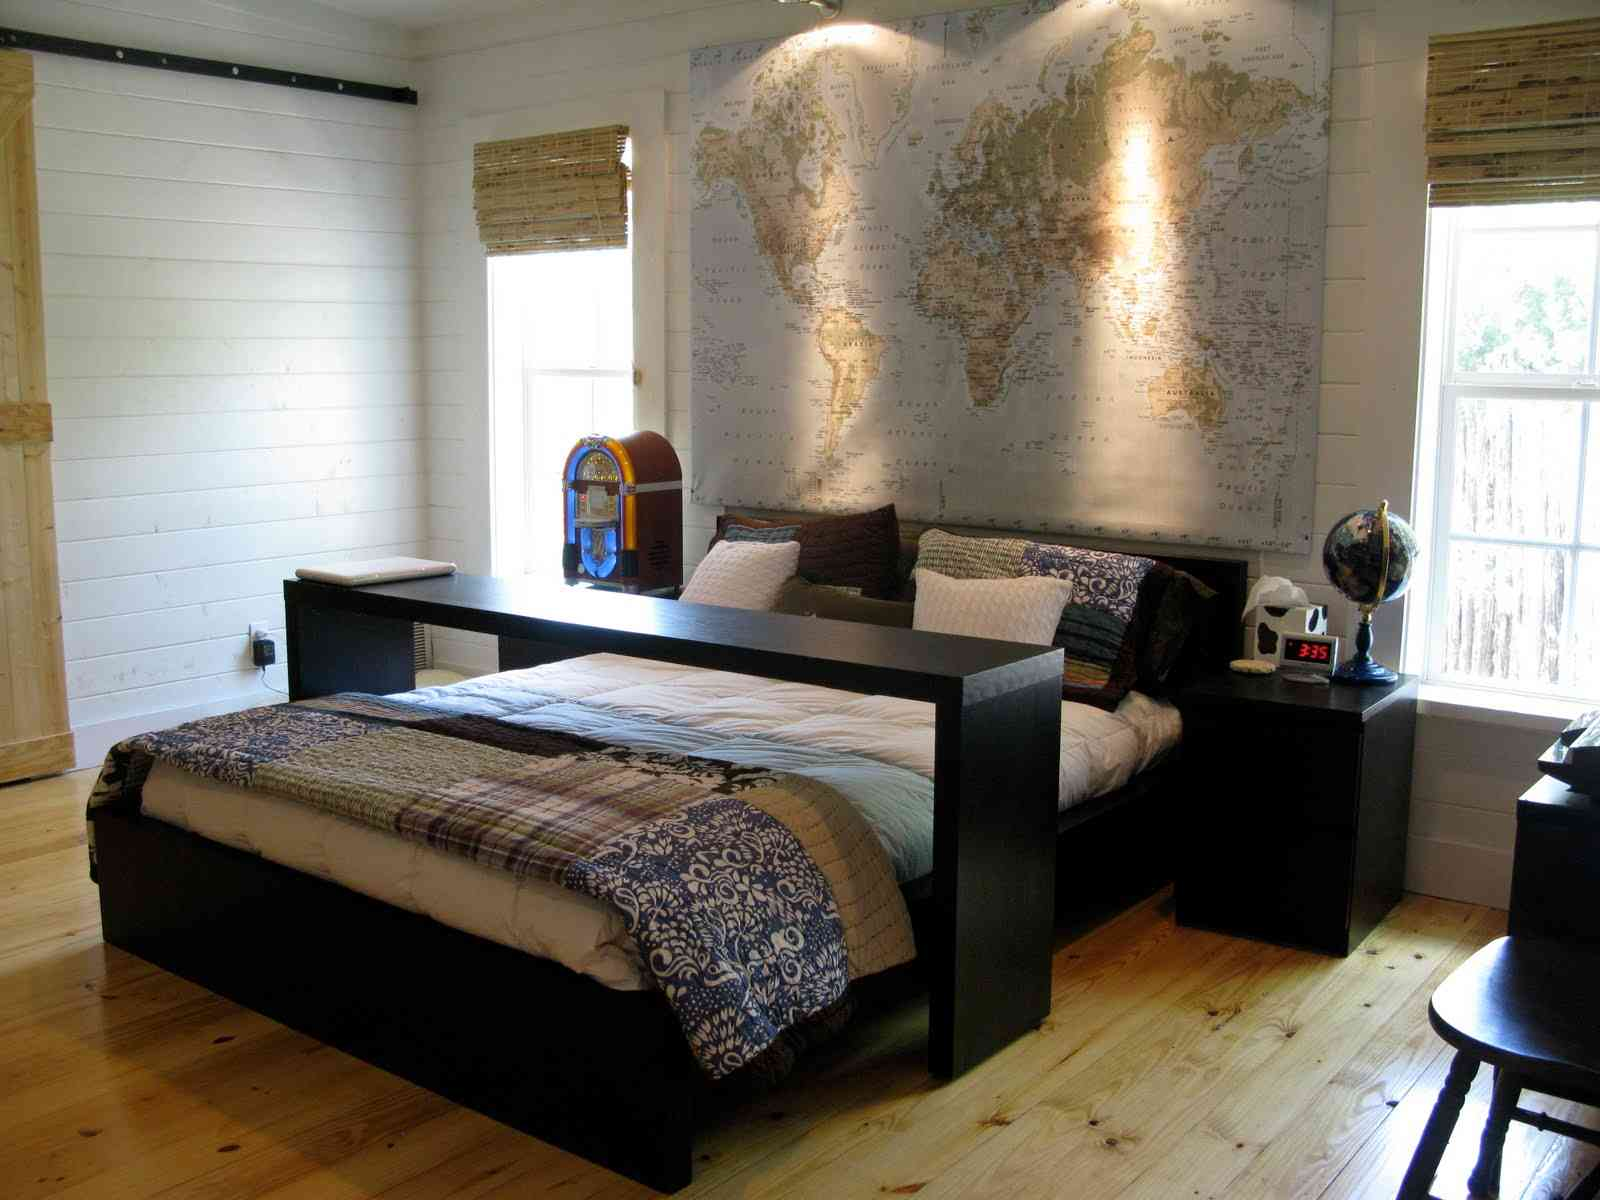 Bedroom furniture from ikea new bedroom 2015 room design inspirations - Ikea boys bedroom ideas ...